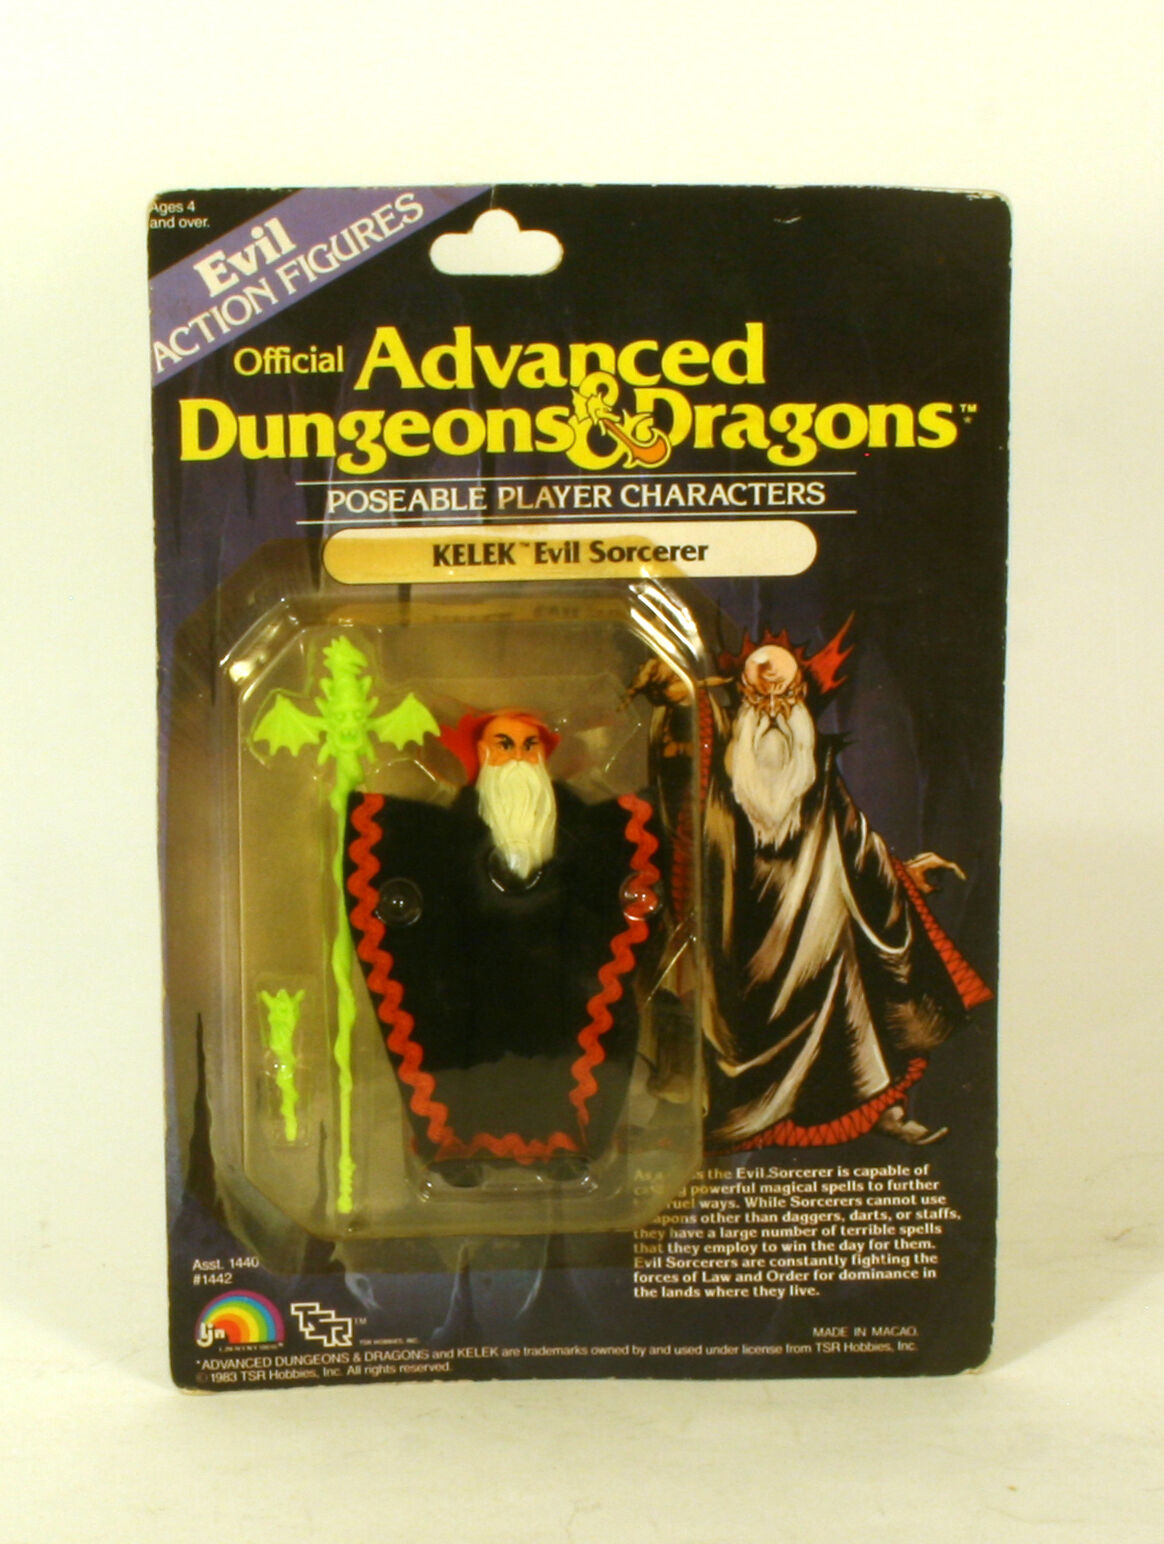 Ljn advanced dungeons and dragons böses actionfiguren kelek böse zauberer moc